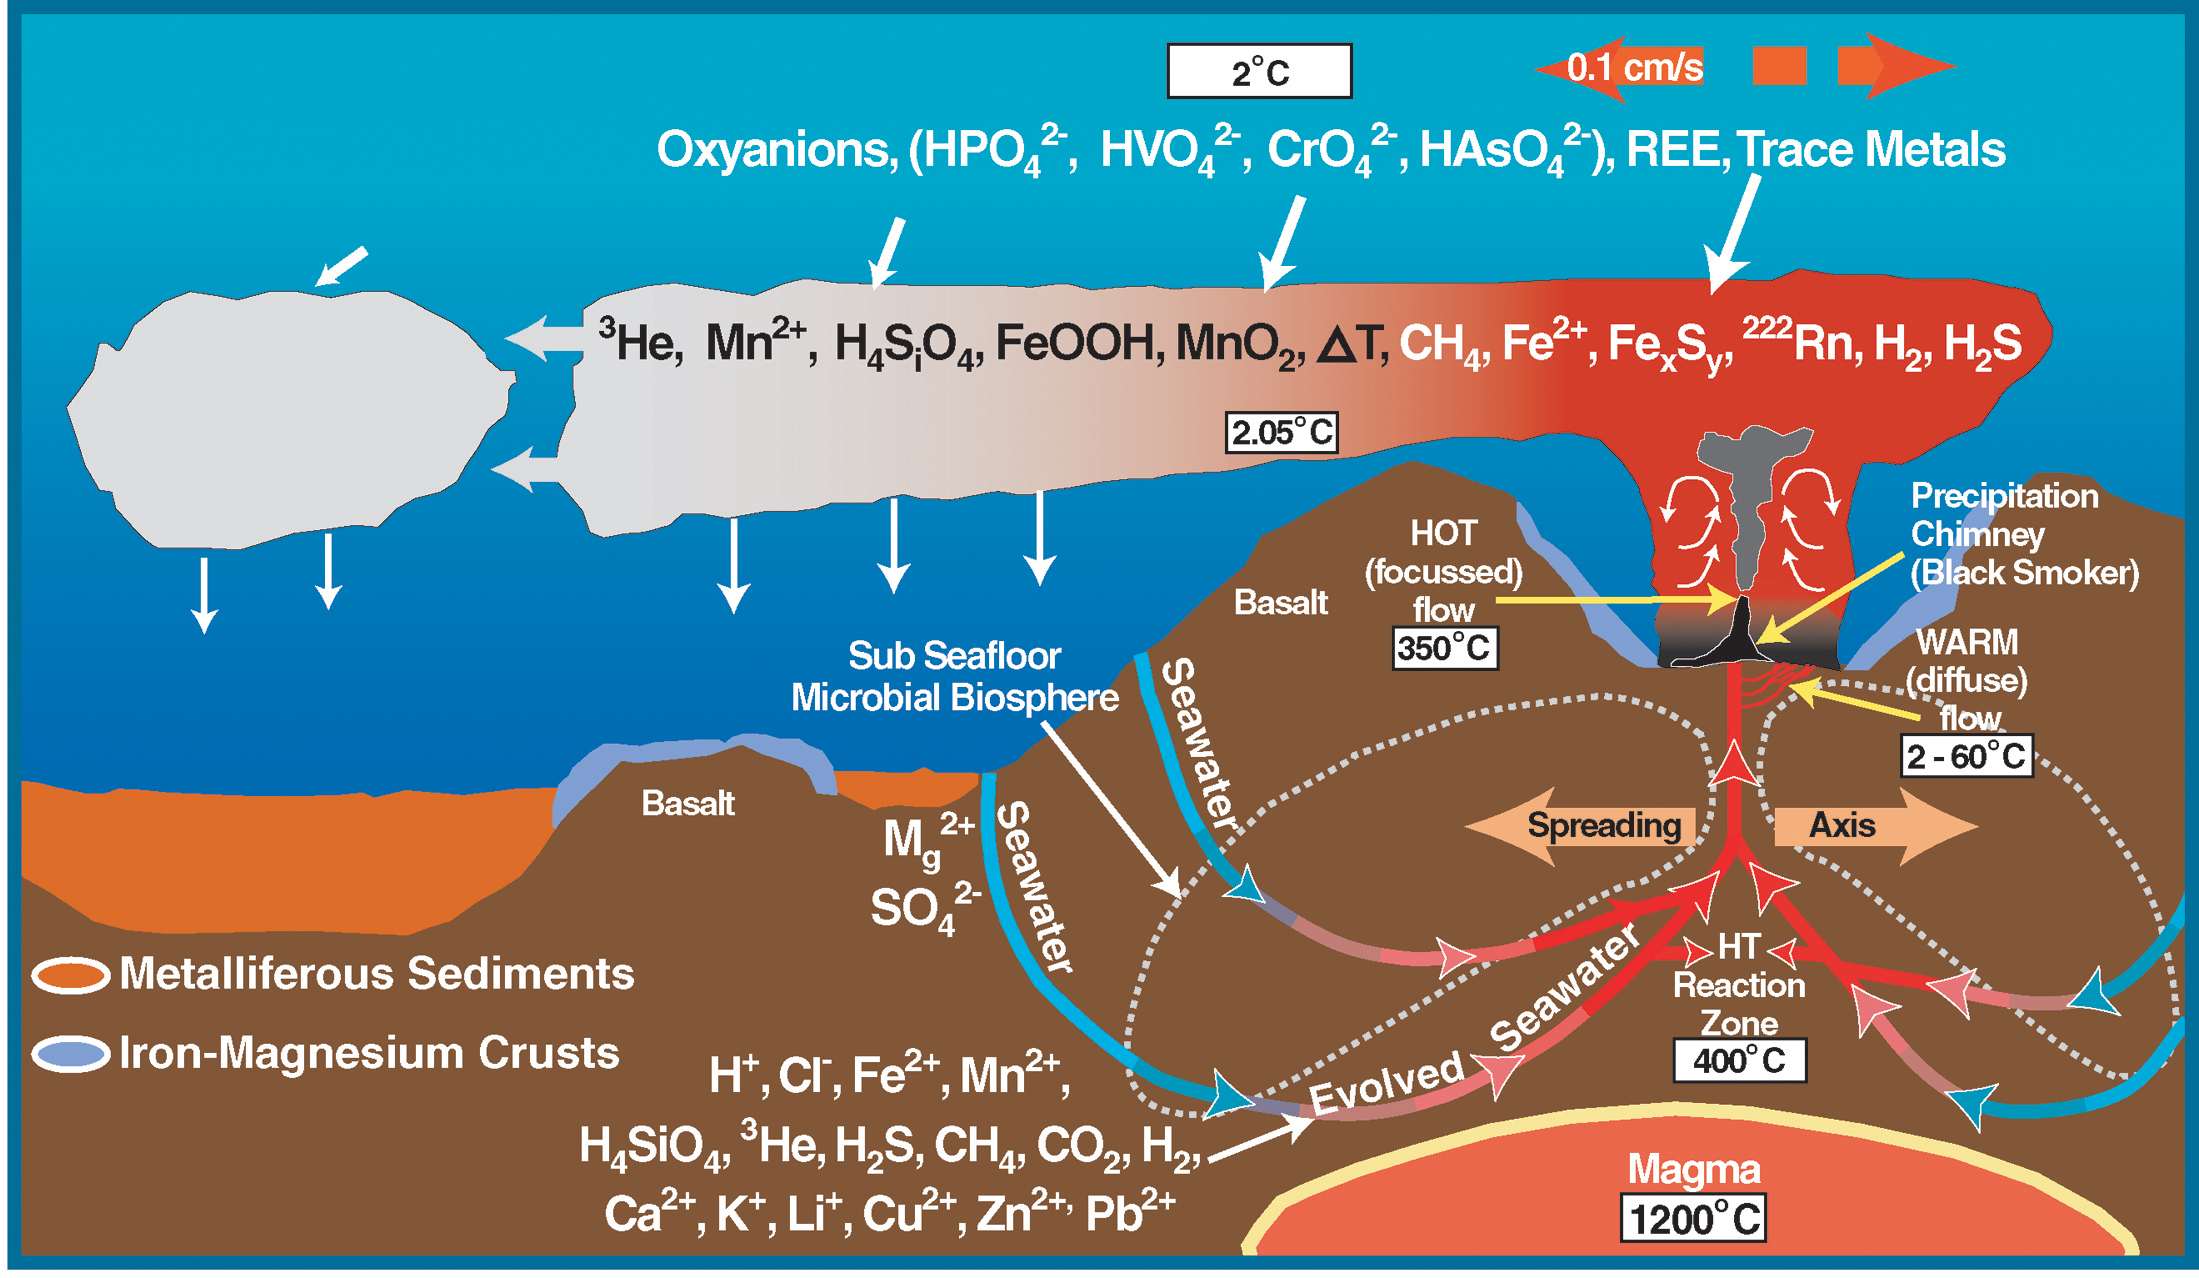 https://i0.wp.com/upload.wikimedia.org/wikipedia/commons/b/b8/Deep_sea_vent_chemistry_diagram.jpg